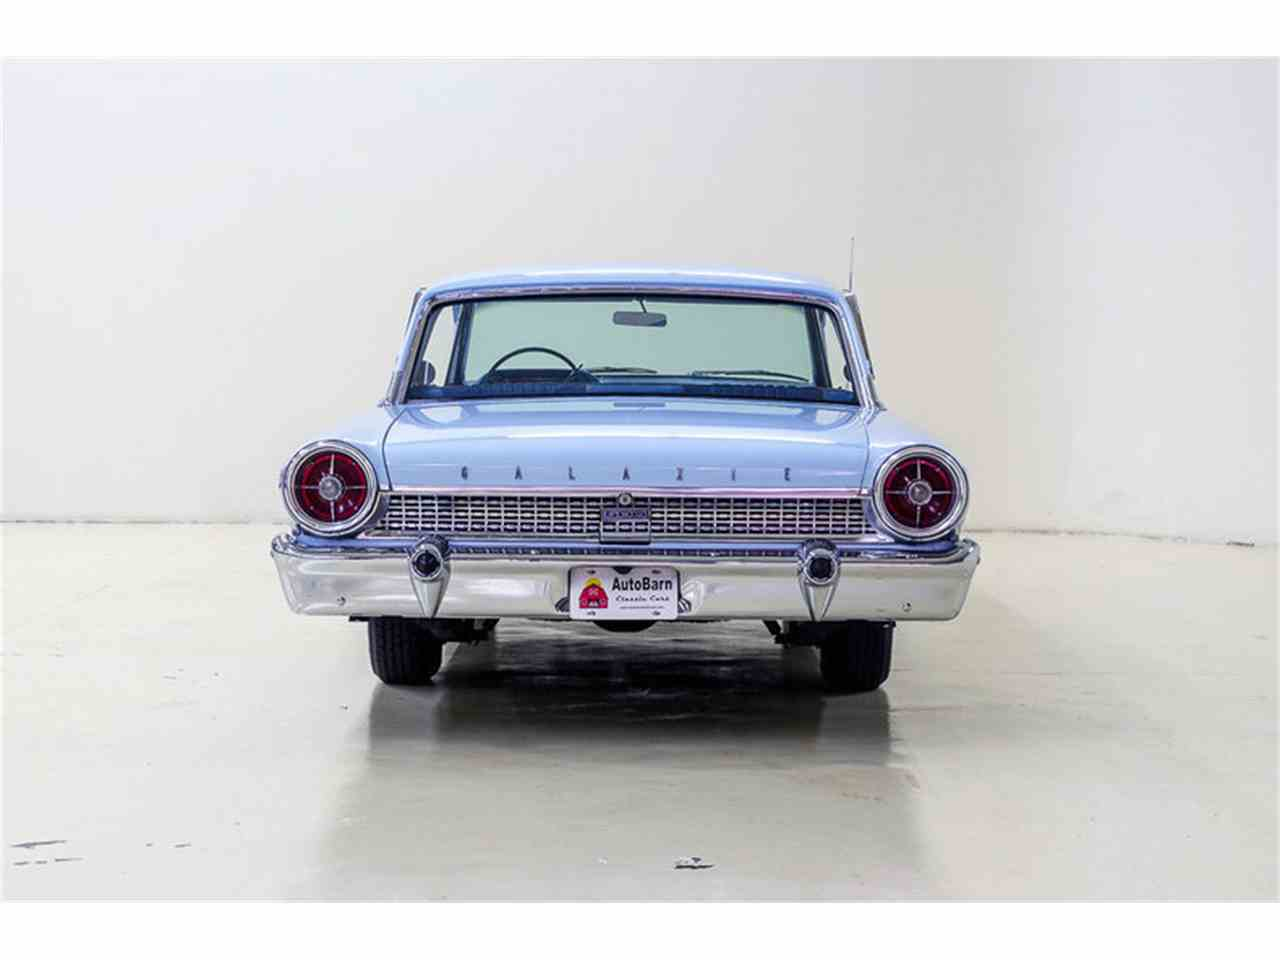 Large Picture of Classic '63 Ford Galaxie 500 located in North Carolina - $22,995.00 - JQ29